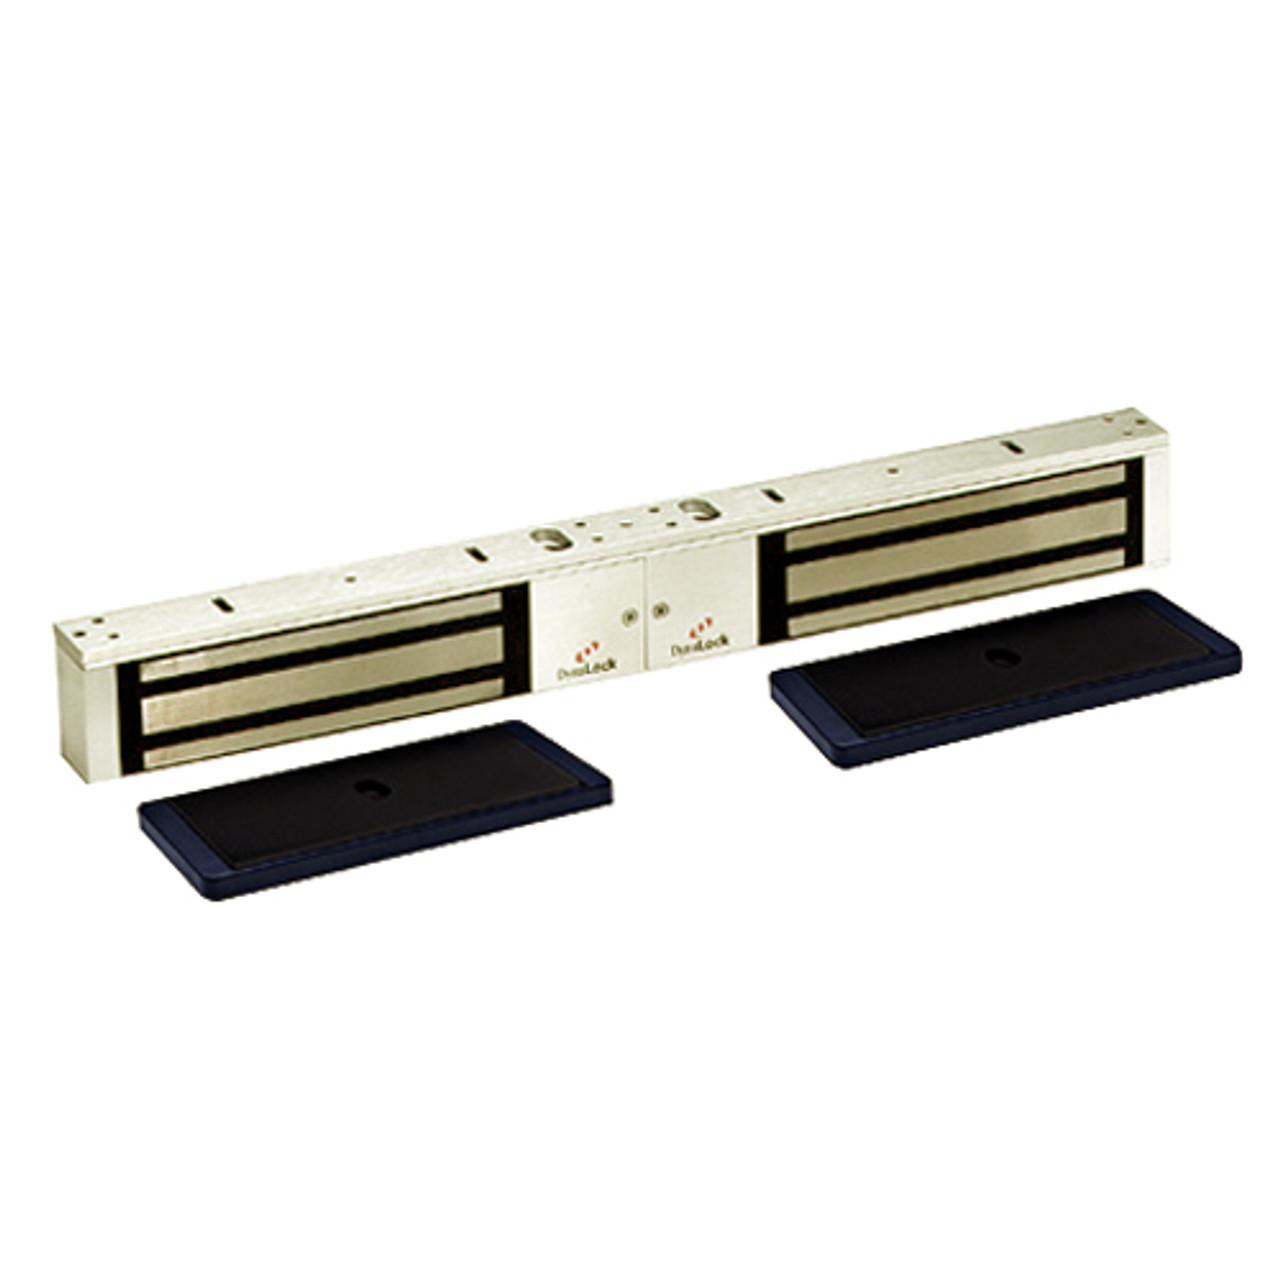 2022-US4-HSM2 DynaLock 2000 Series 1200 LB Holding Force Double Electromagnetic Lock with High Security Monitor in Satin Brass